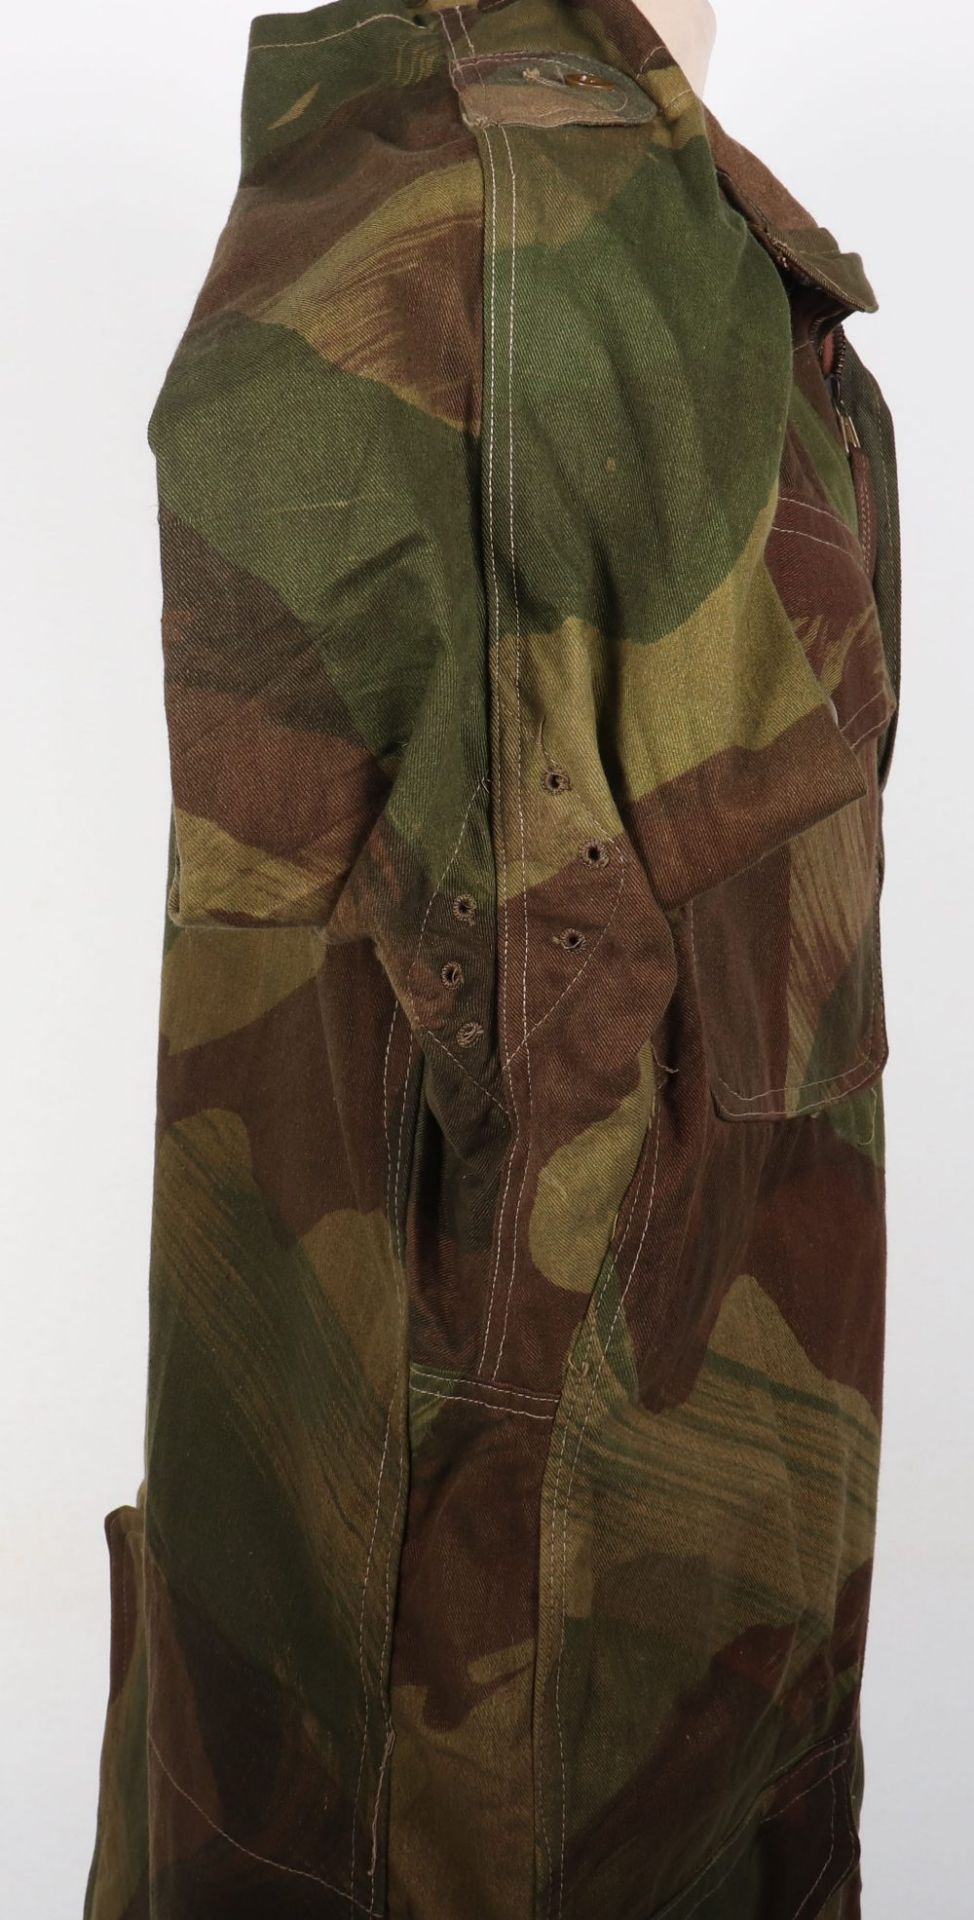 Mint Condition Large Size Airborne Forces Denison Smock - Image 8 of 17